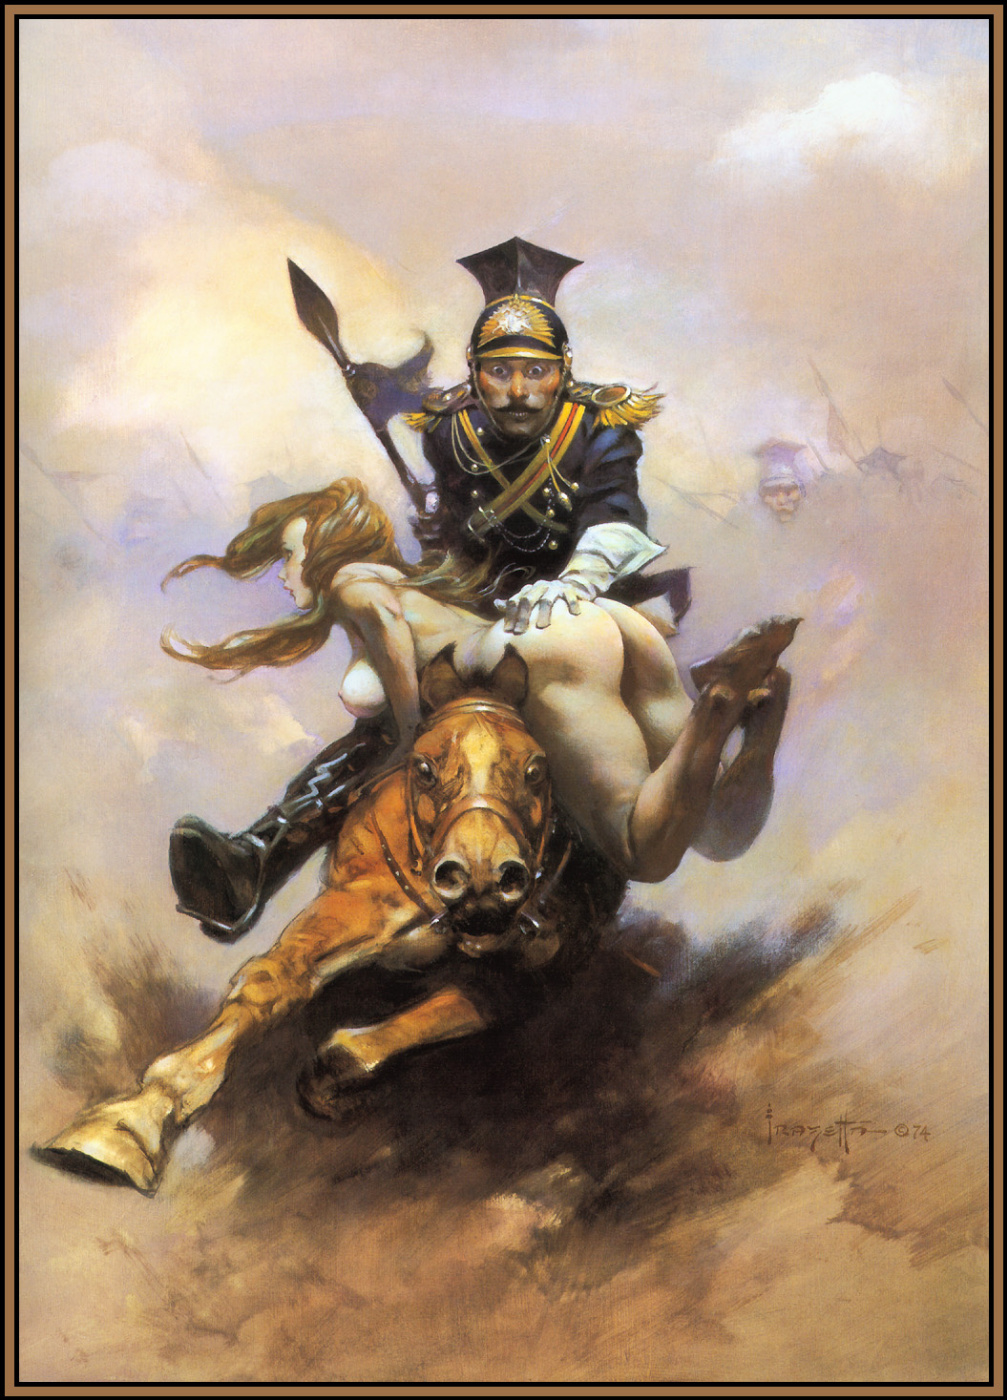 Frank Frazetta. On horseback